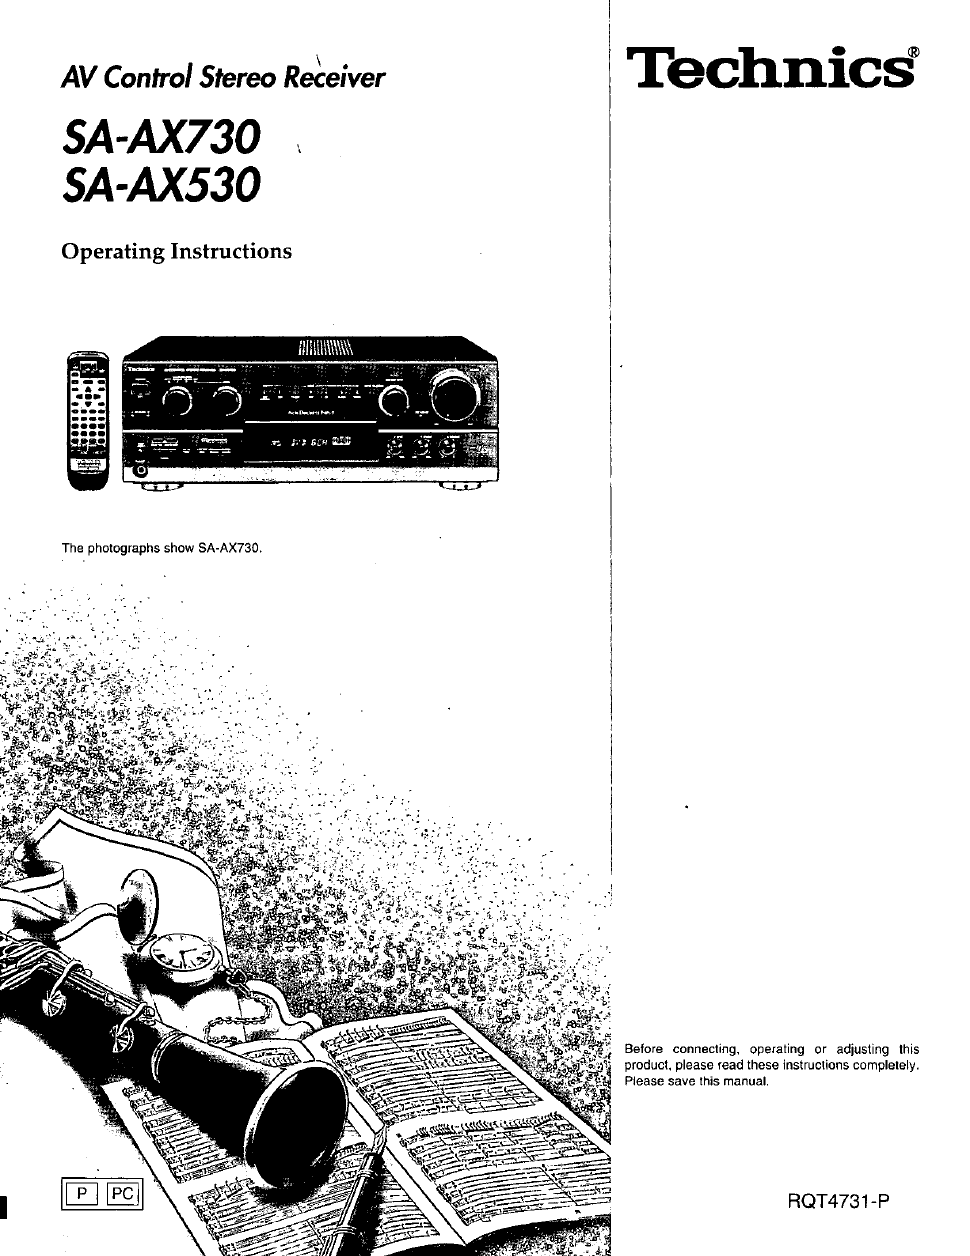 Technics SA-AX530 Owner's Manual - Free PDF Download (40 Pages)